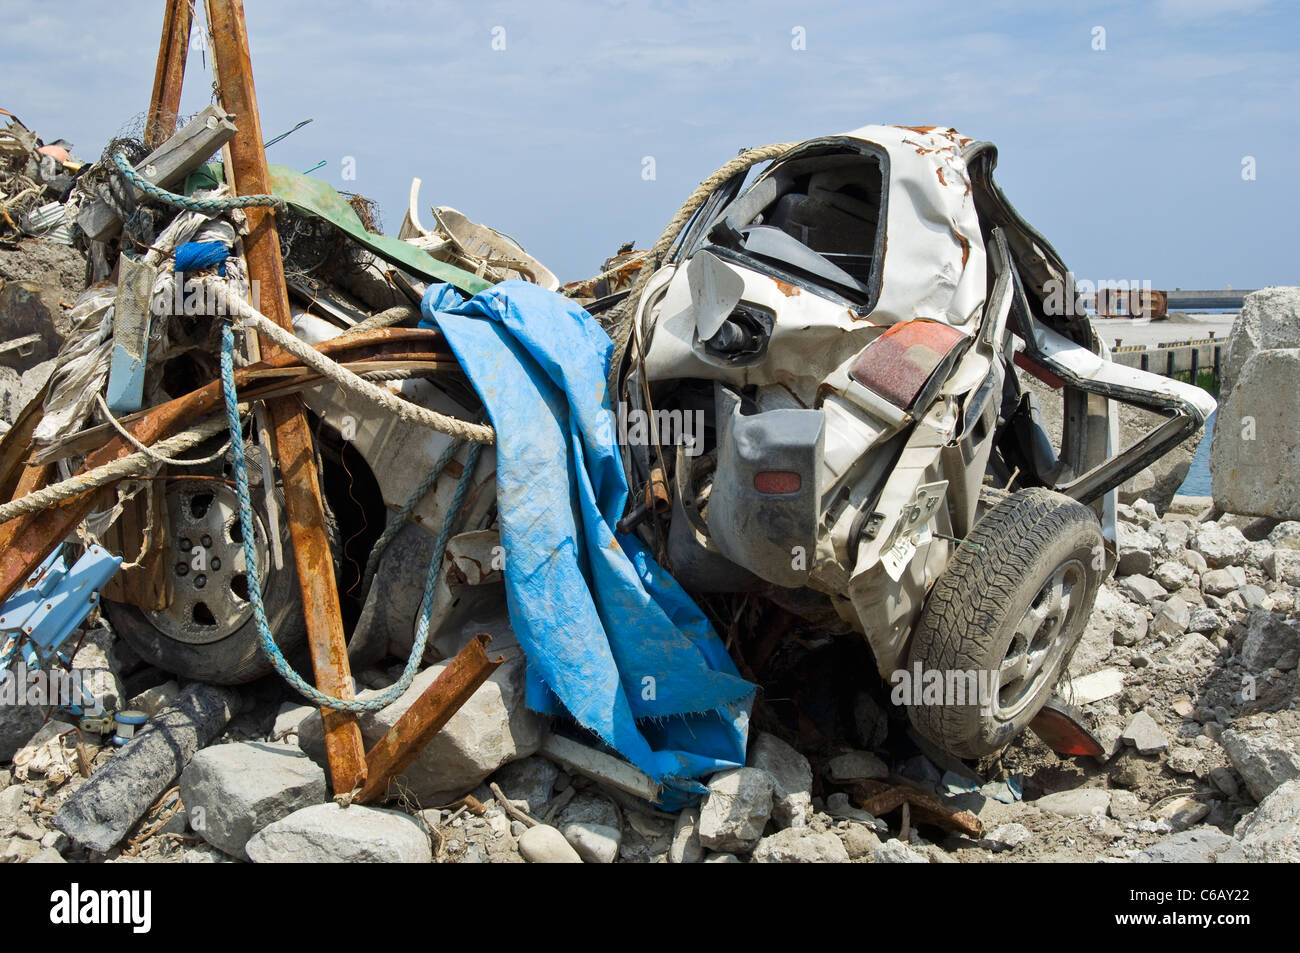 Debris and a car totally destroyed by the tsunami - Stock Image